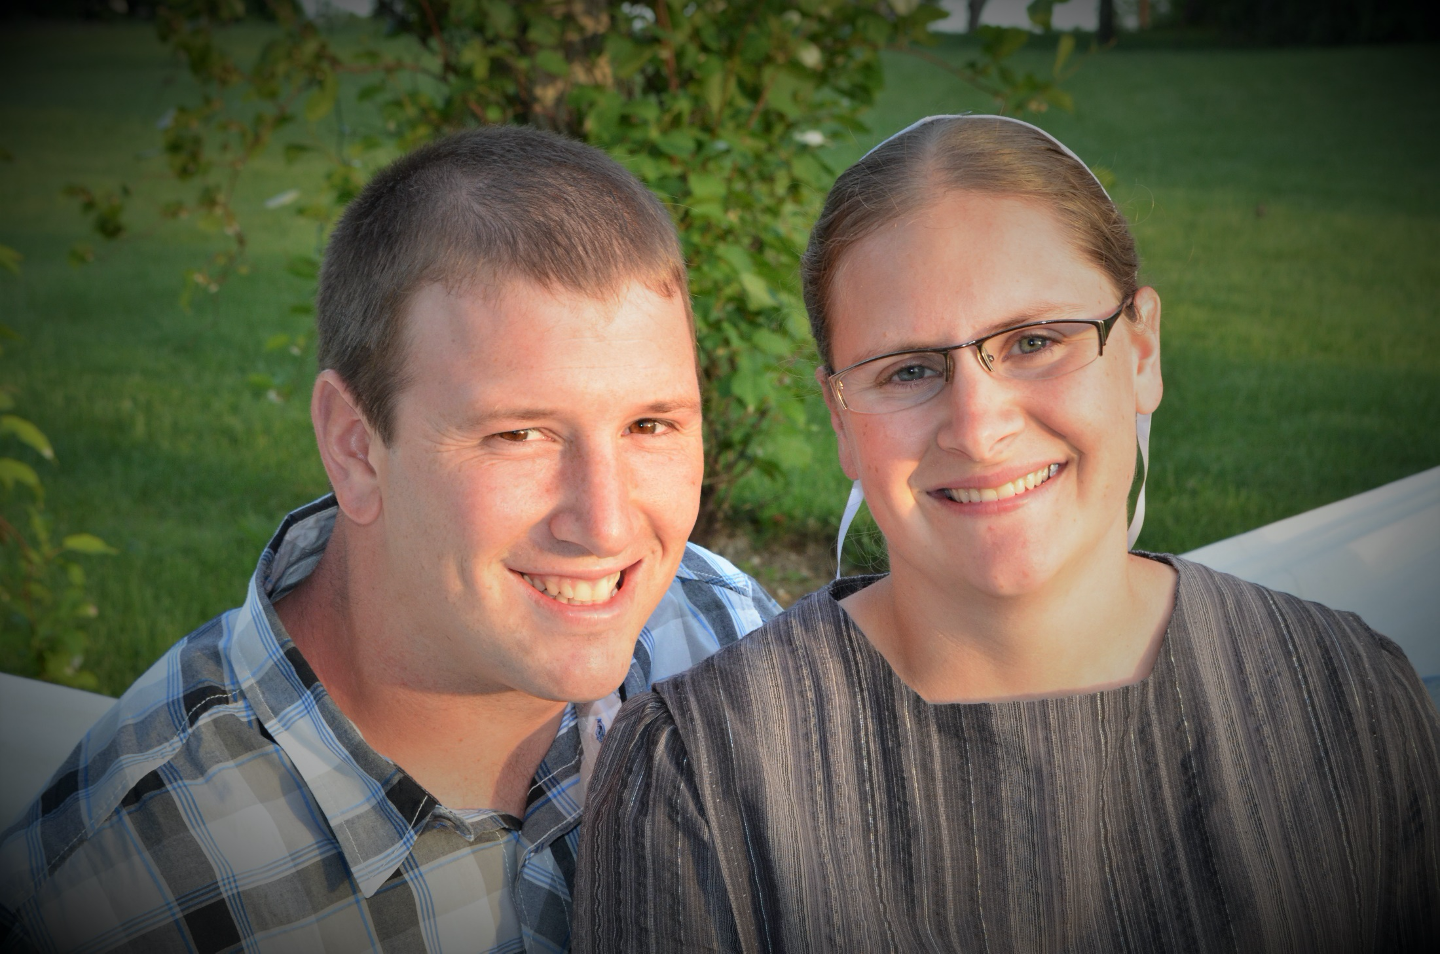 Professional portrait of young Mennonite couple outdoors.